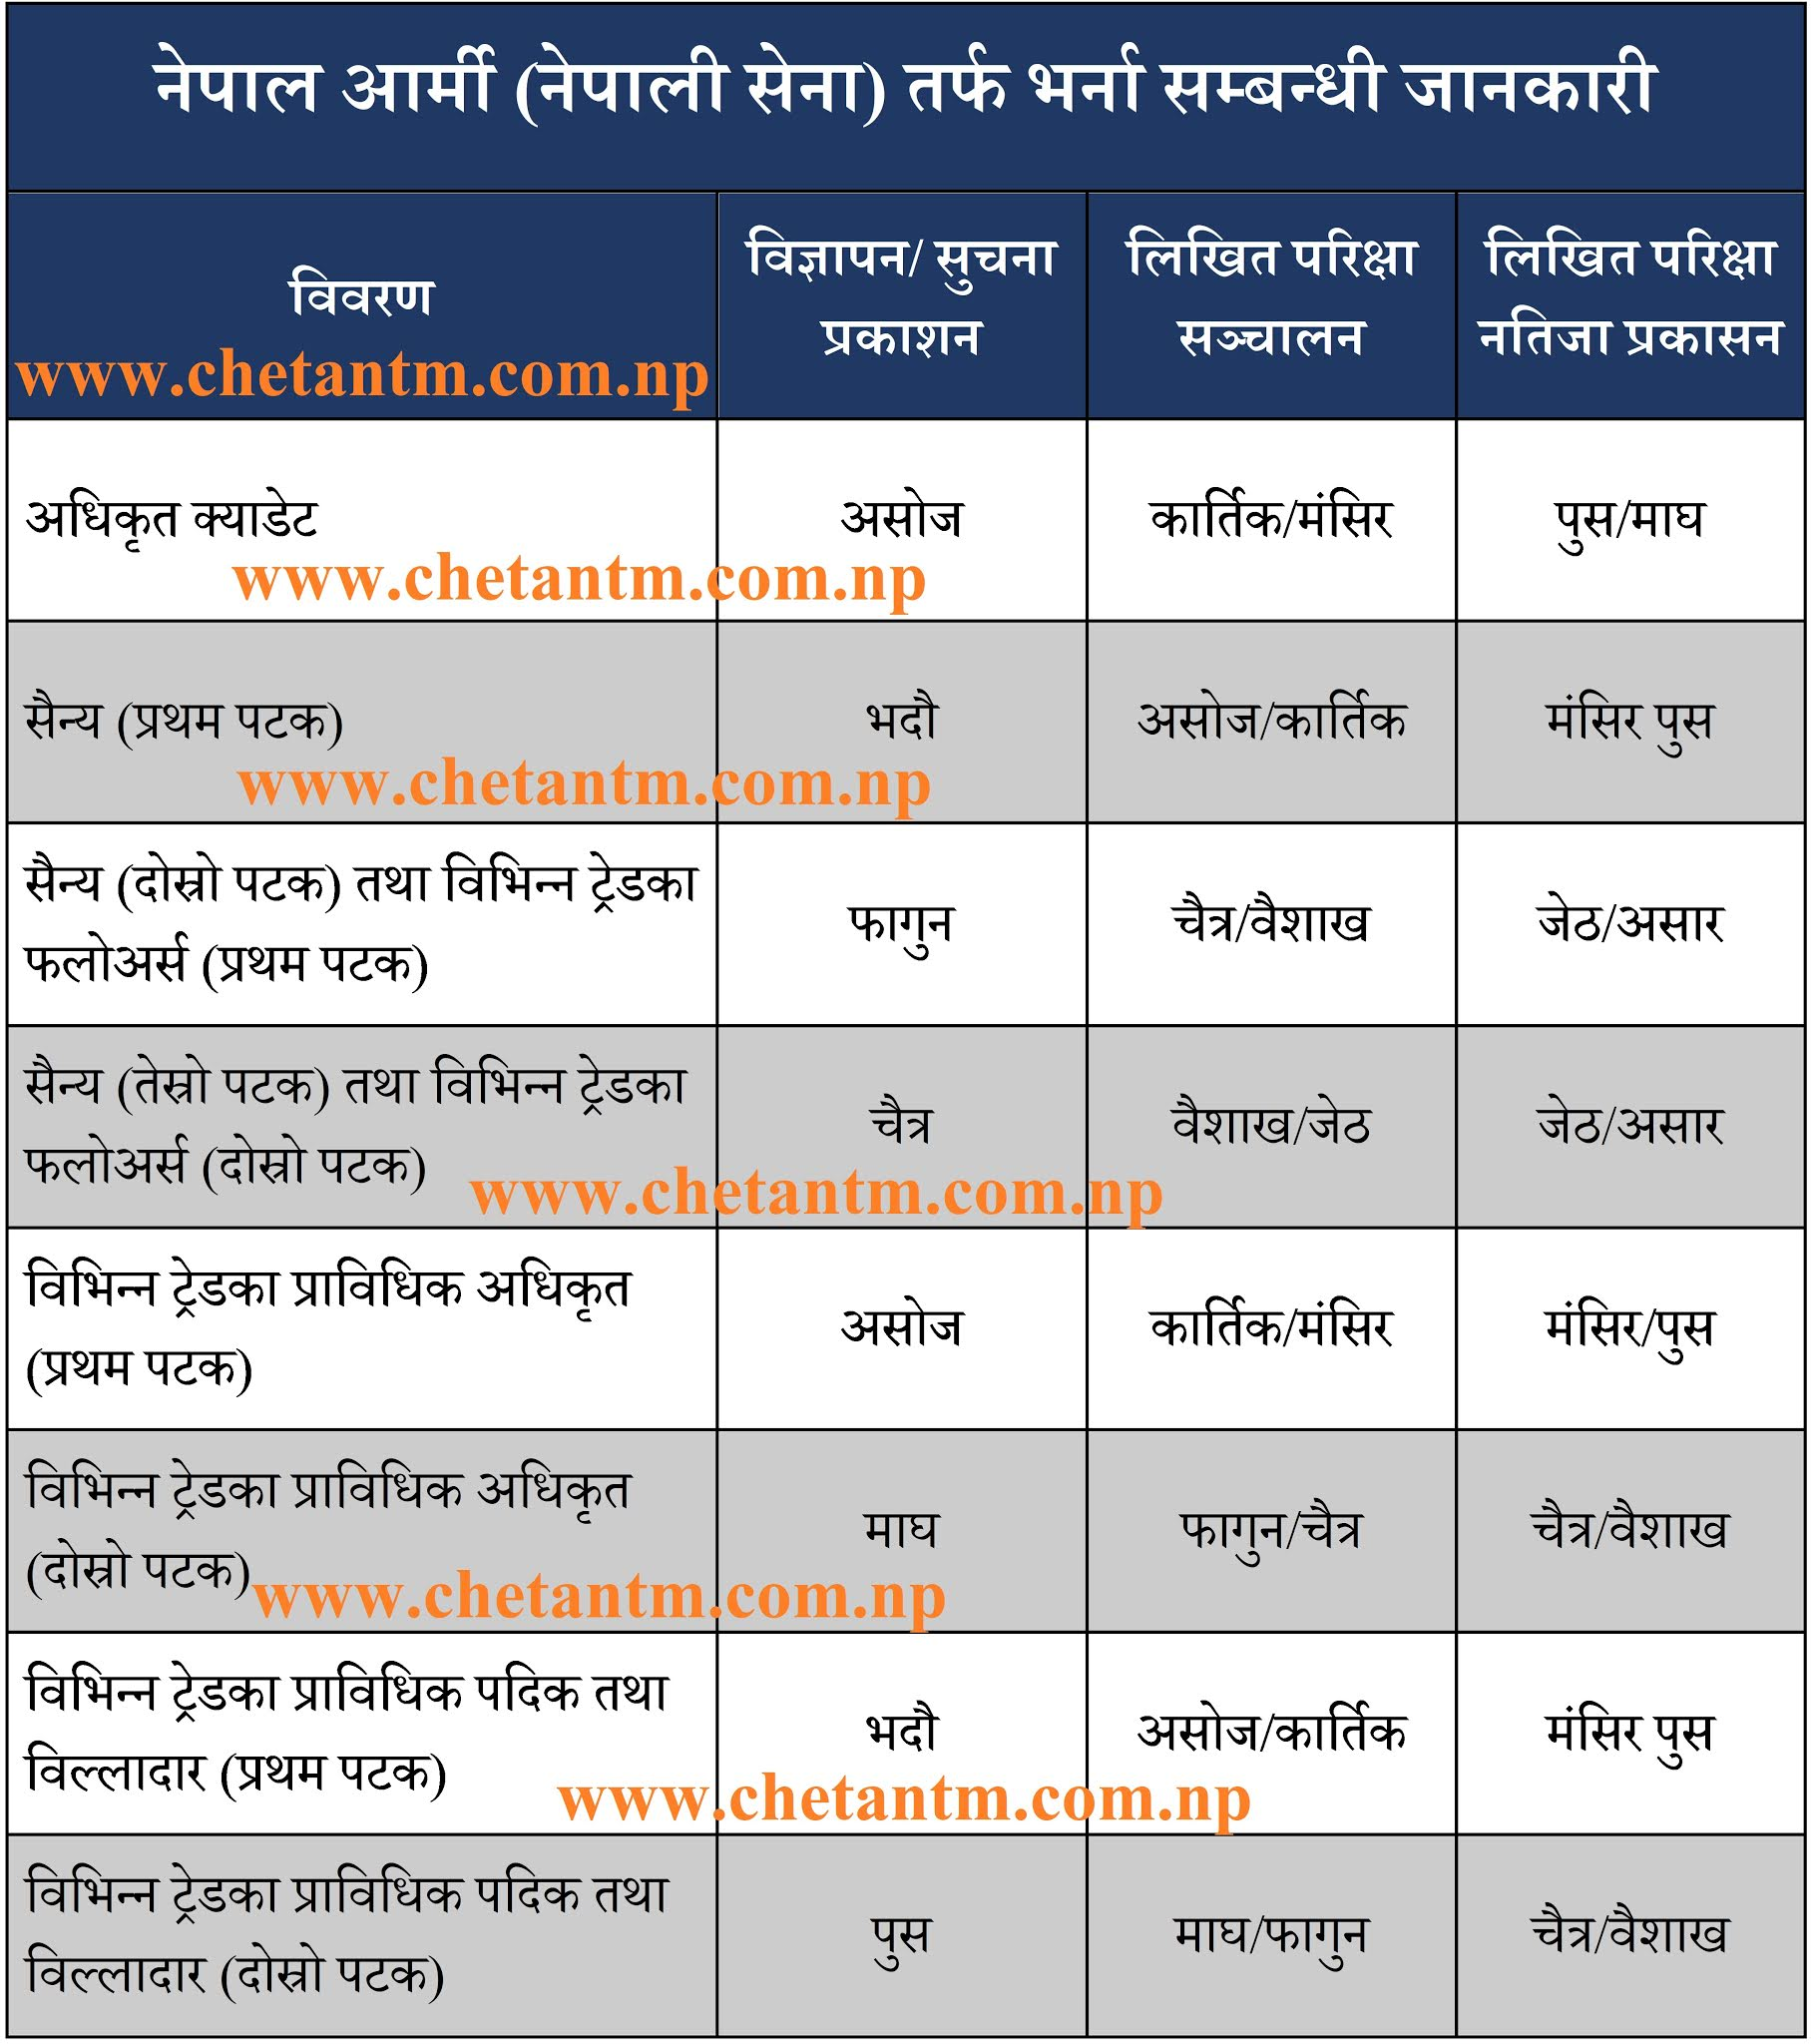 Nepal Army Vacancy Details (2078/79)